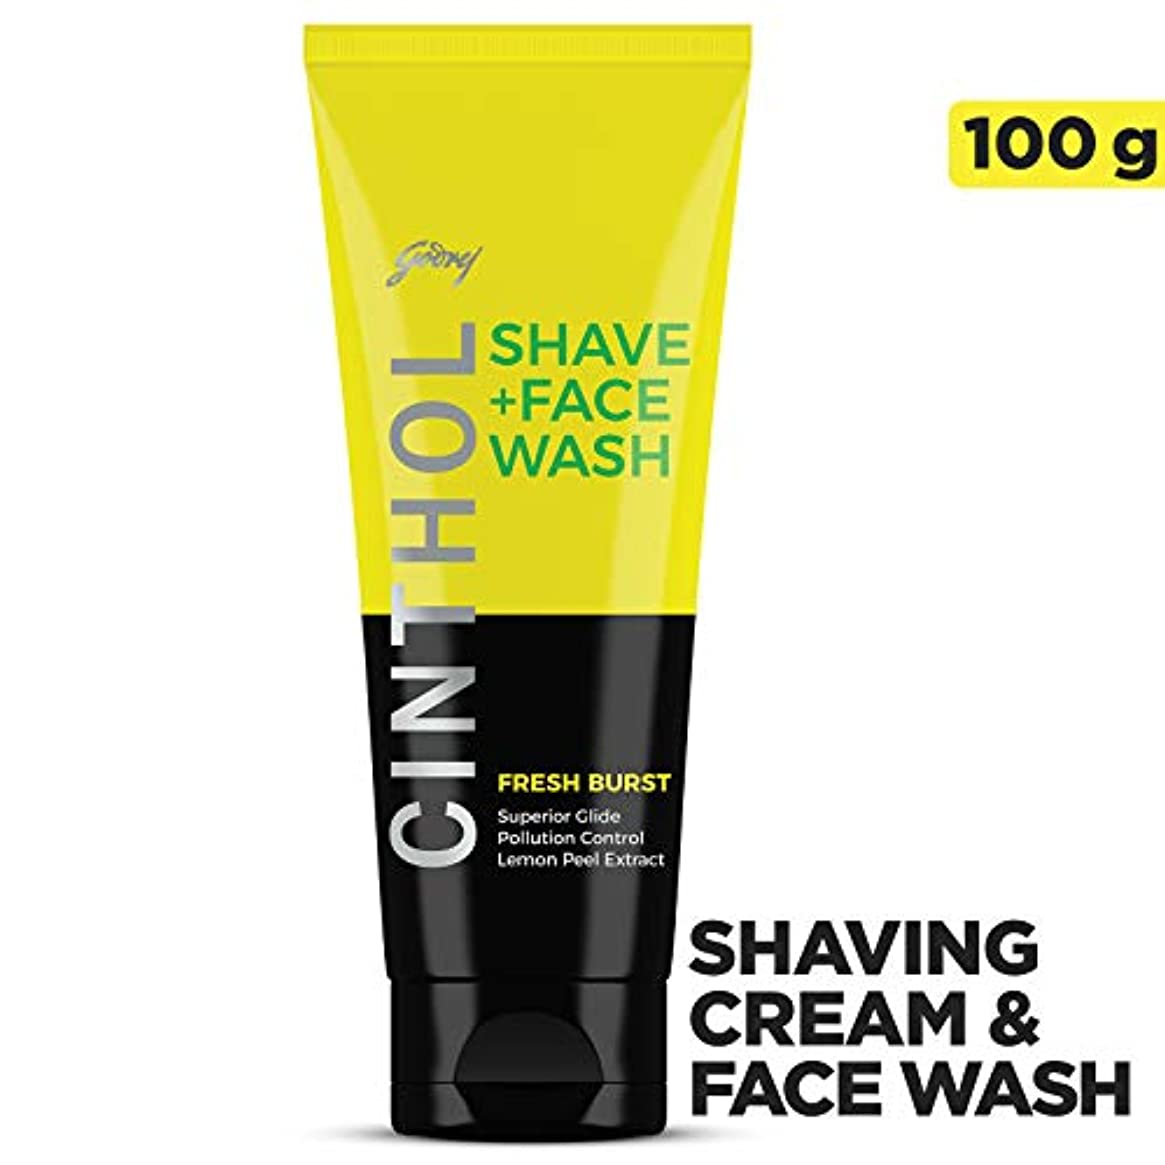 モネ笑い足Cinthol Fresh Burst Shaving + Face Wash, 100g